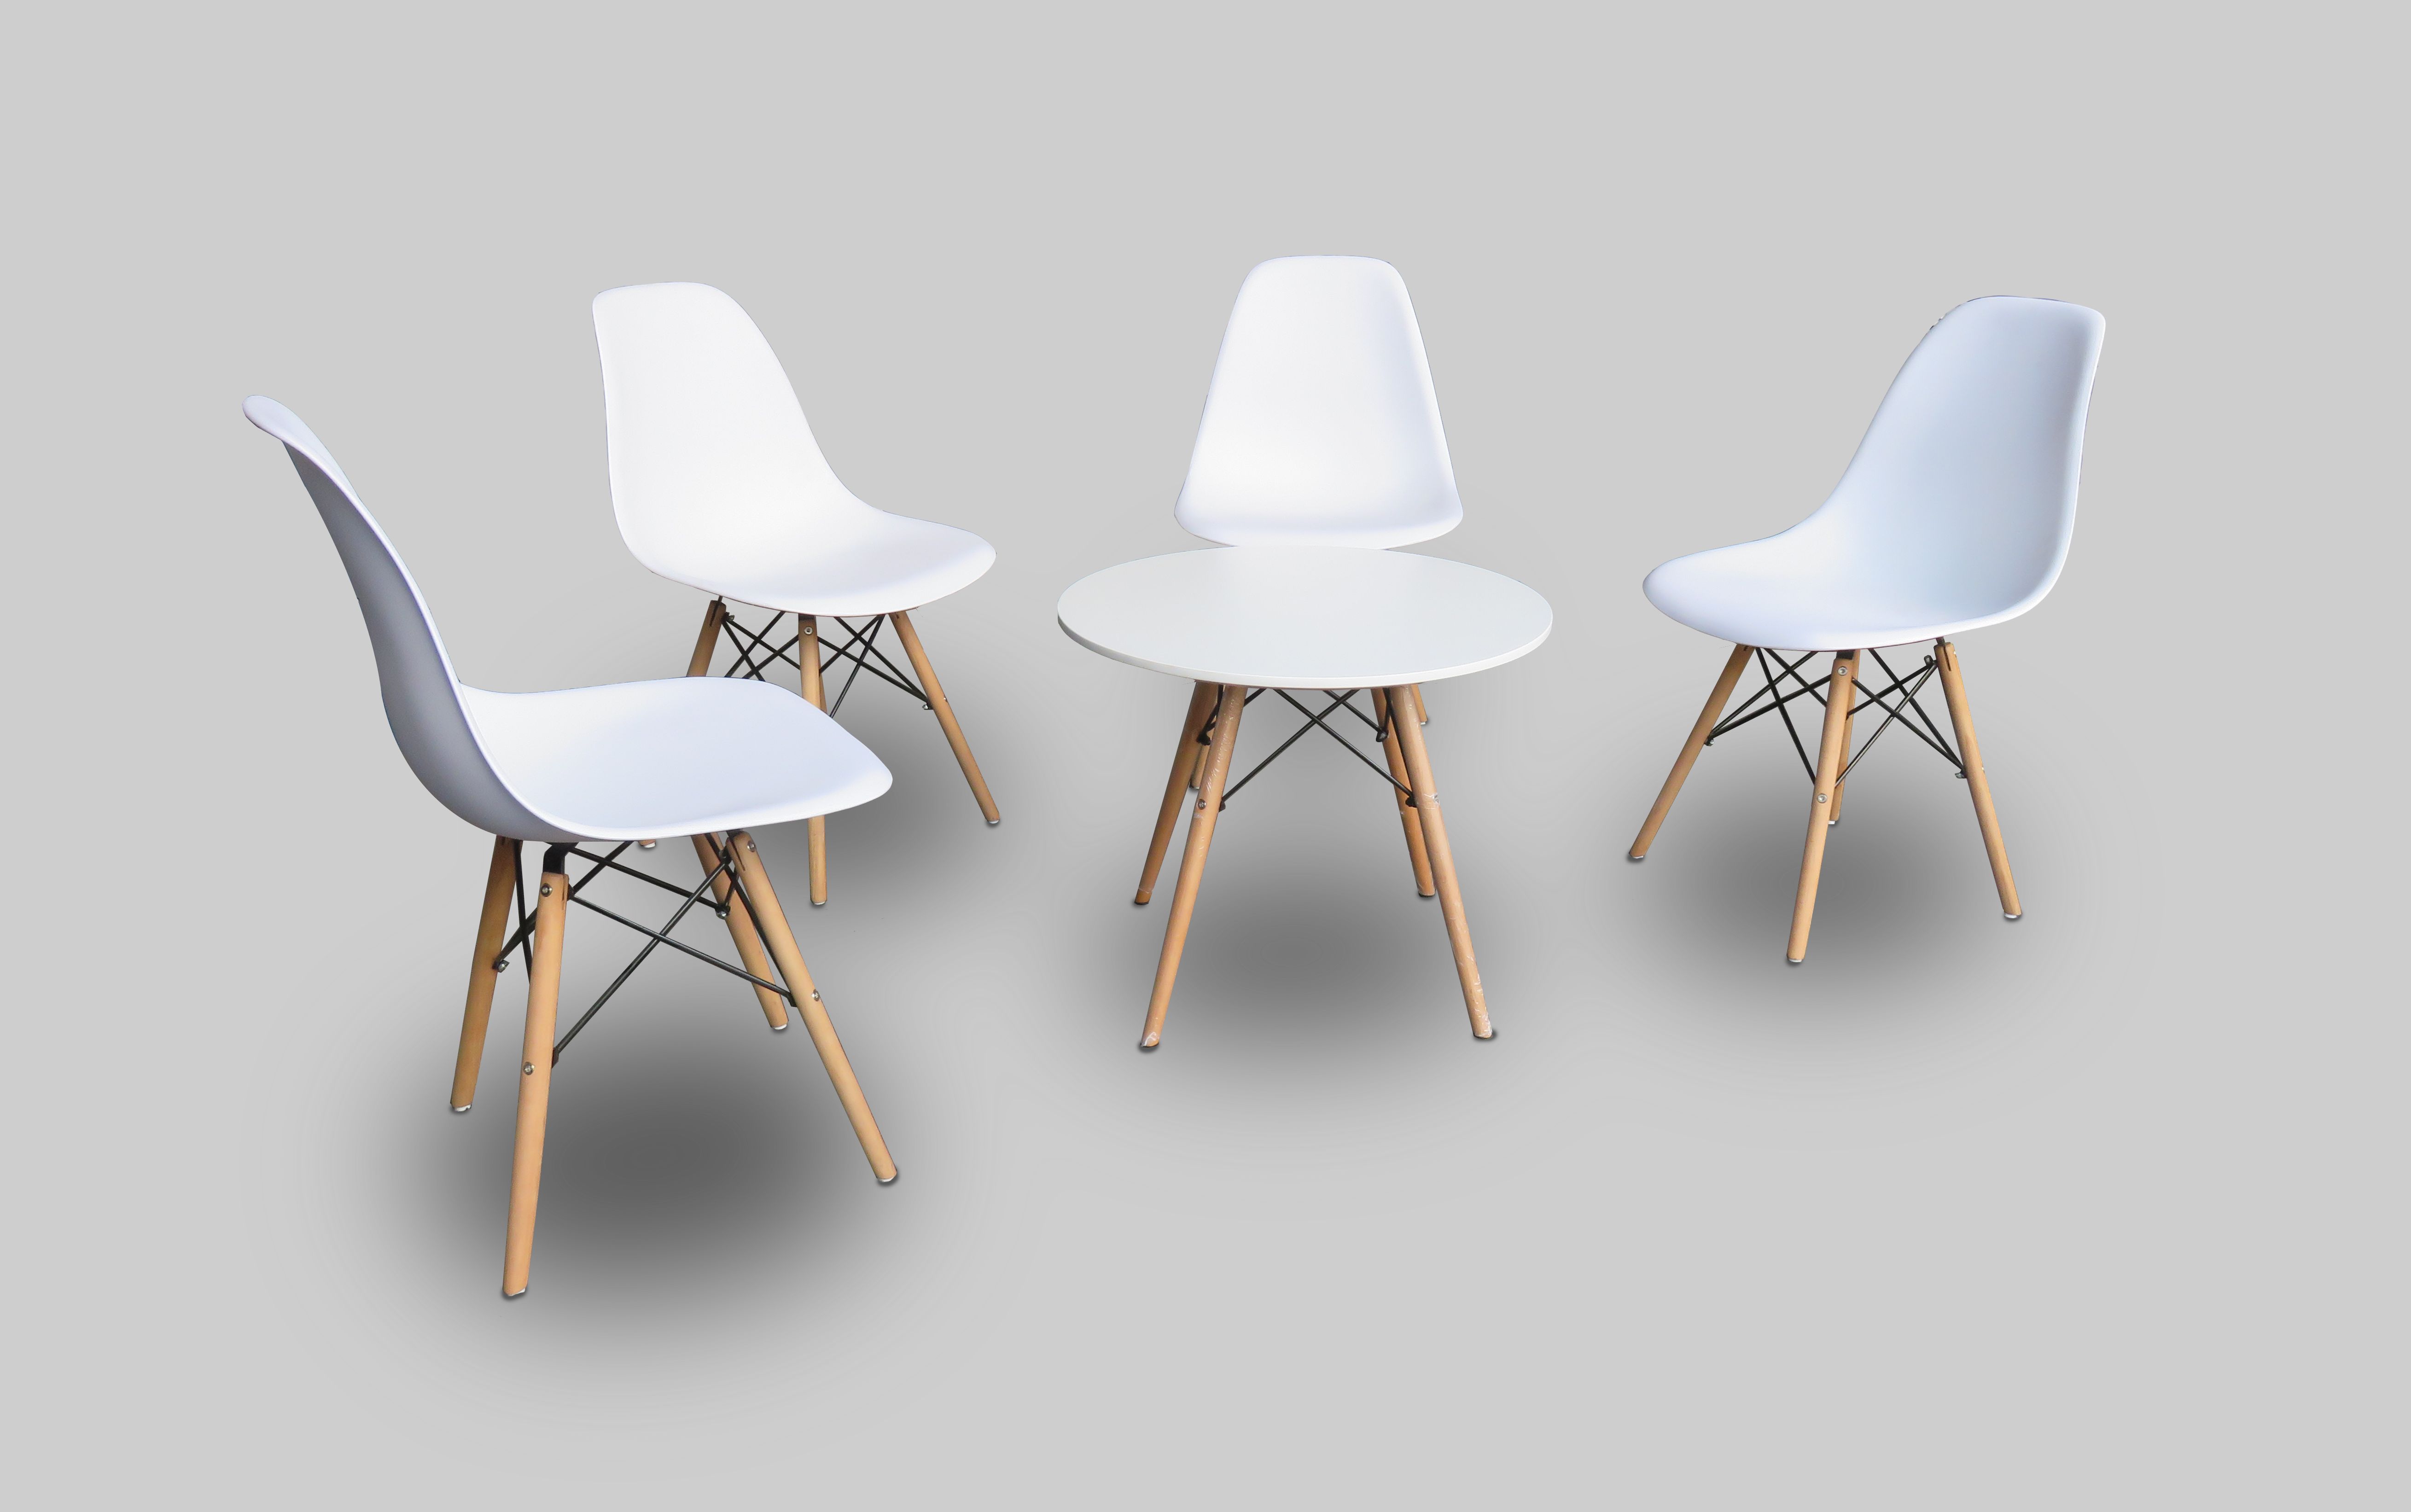 Eames Chair for rent or sale in Dubai, Abu Dhabi and UAE for any event.